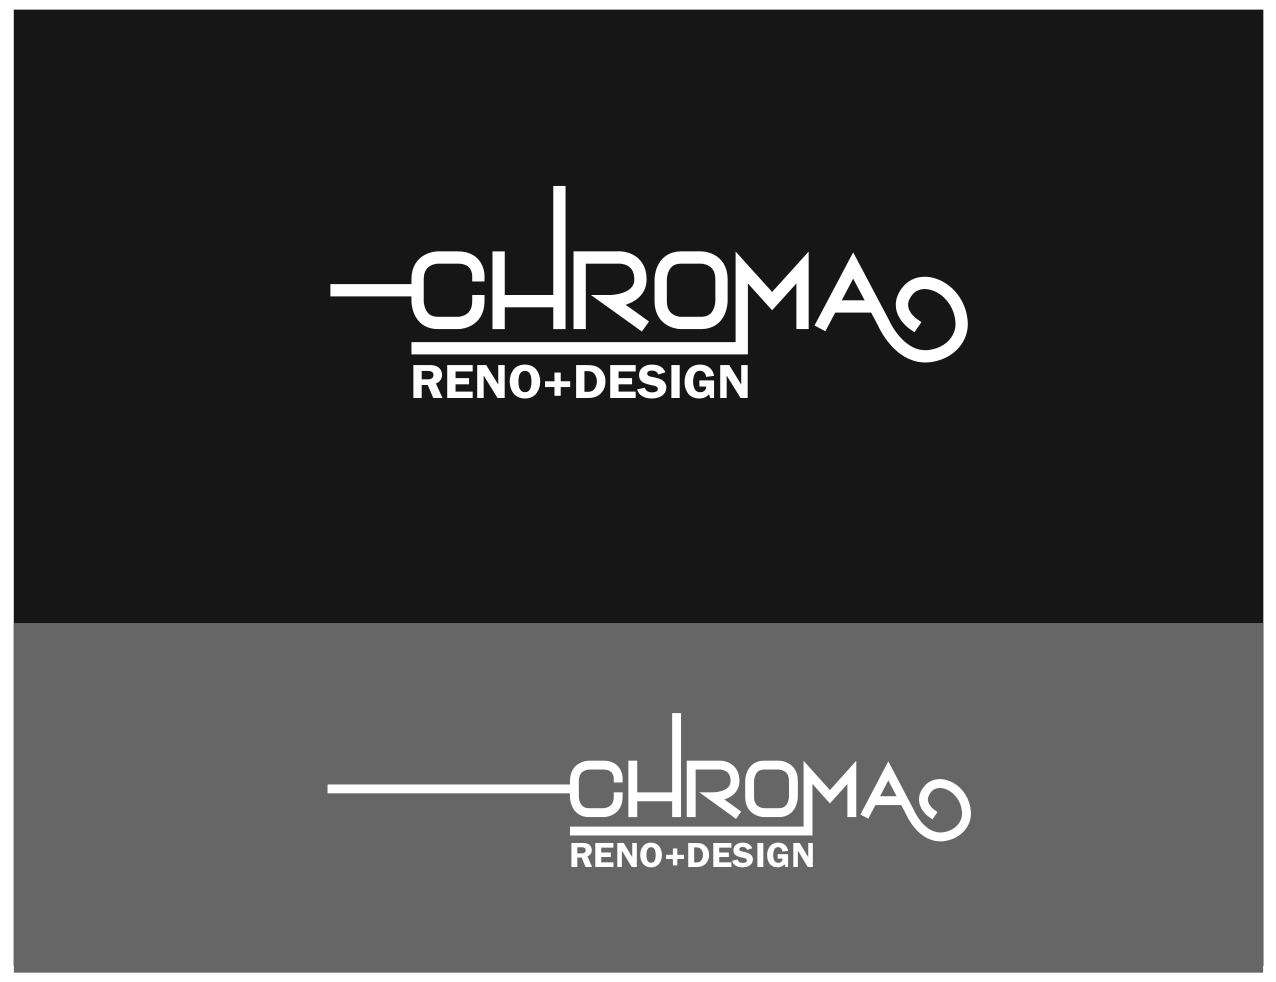 Logo Design by JaroslavProcka - Entry No. 319 in the Logo Design Contest Inspiring Logo Design for Chroma Reno+Design.